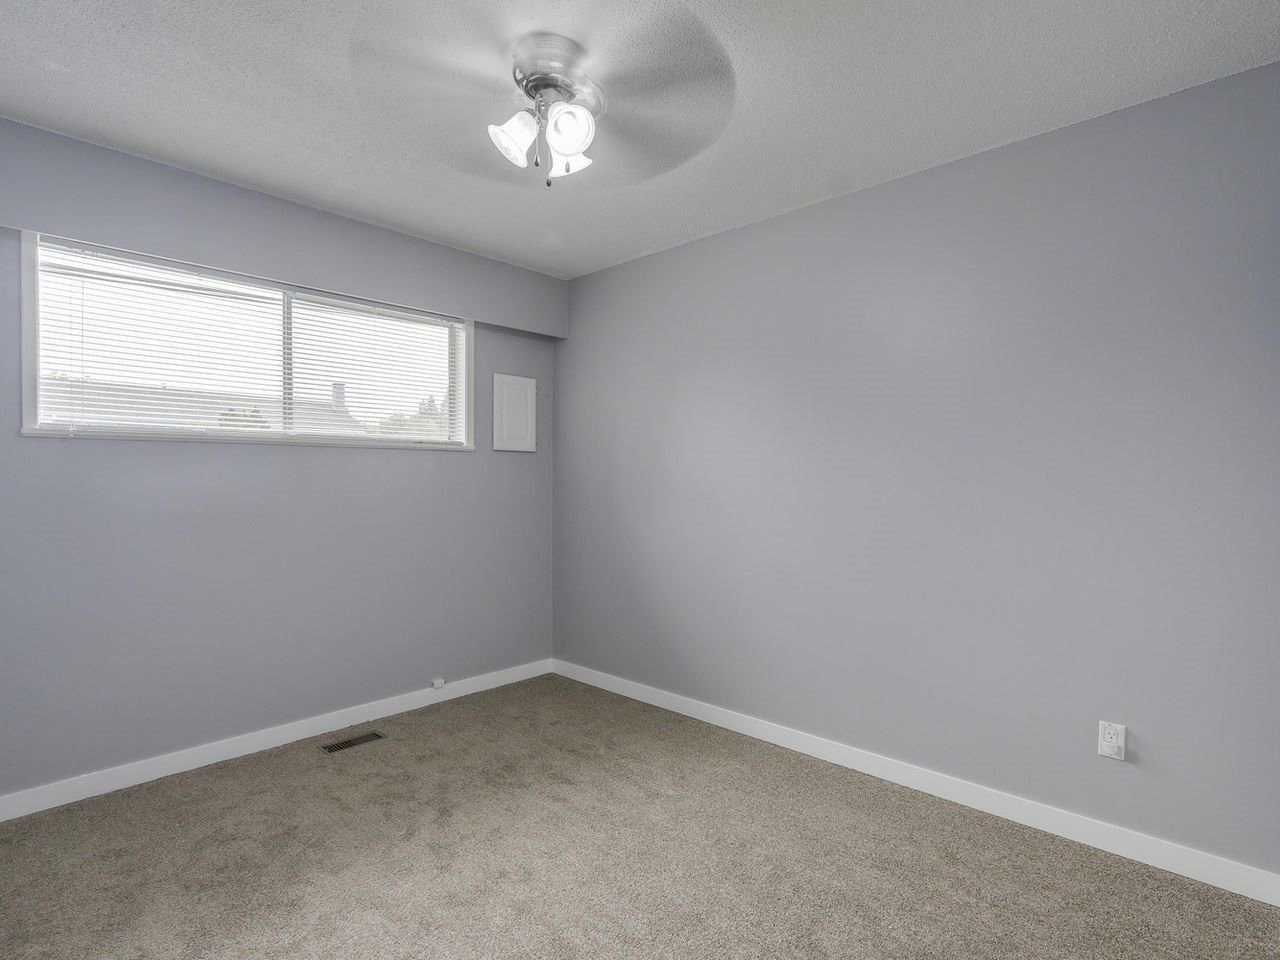 """Photo 13: Photos: 1673 GREENMOUNT Avenue in Port Coquitlam: Oxford Heights 1/2 Duplex for sale in """"OXFORD HEIGHTS"""" : MLS®# R2221936"""